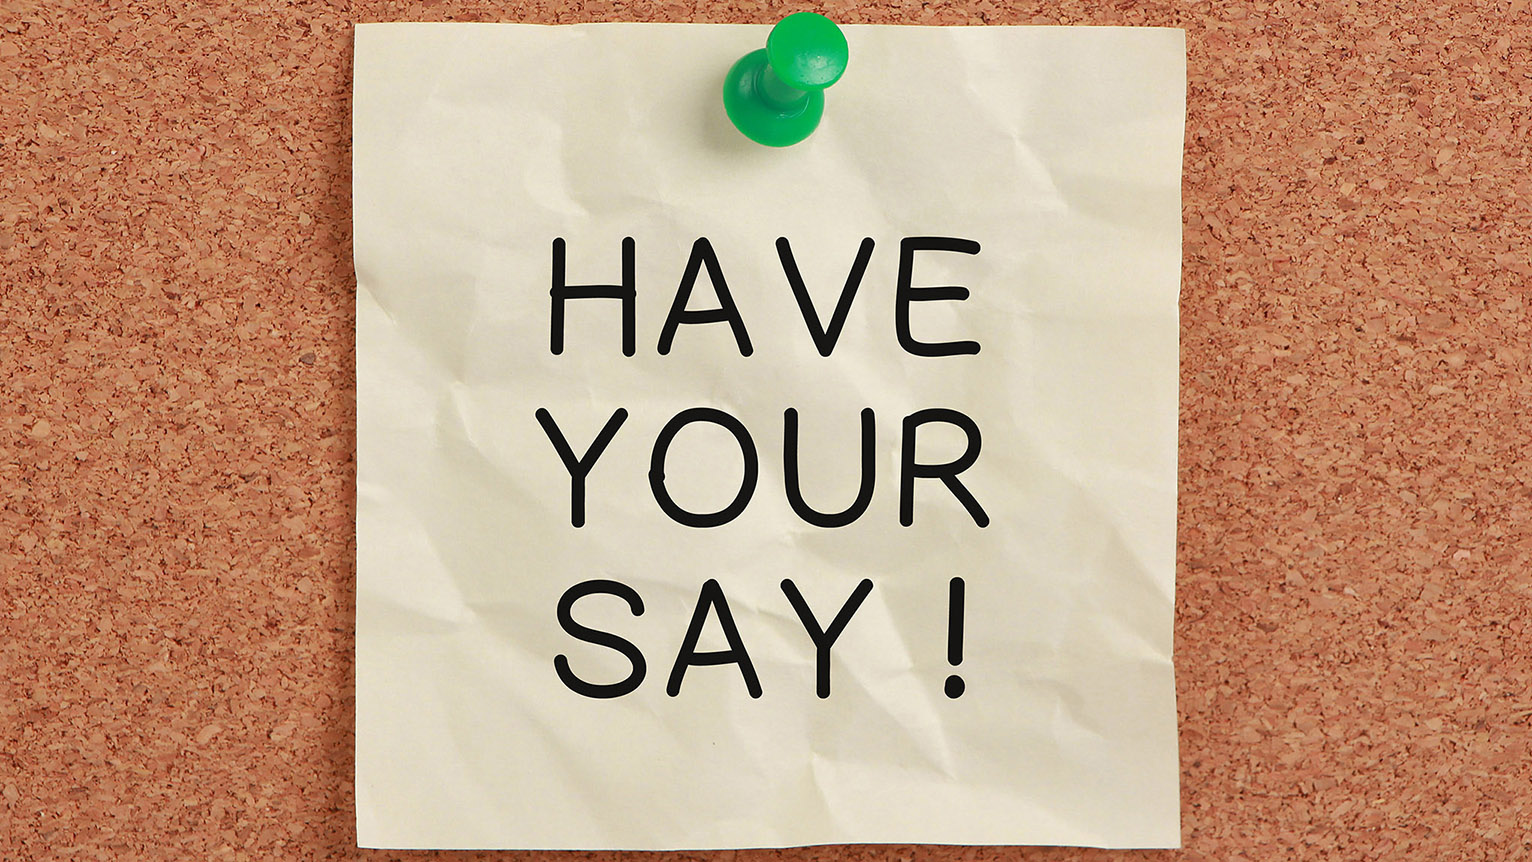 Have your say